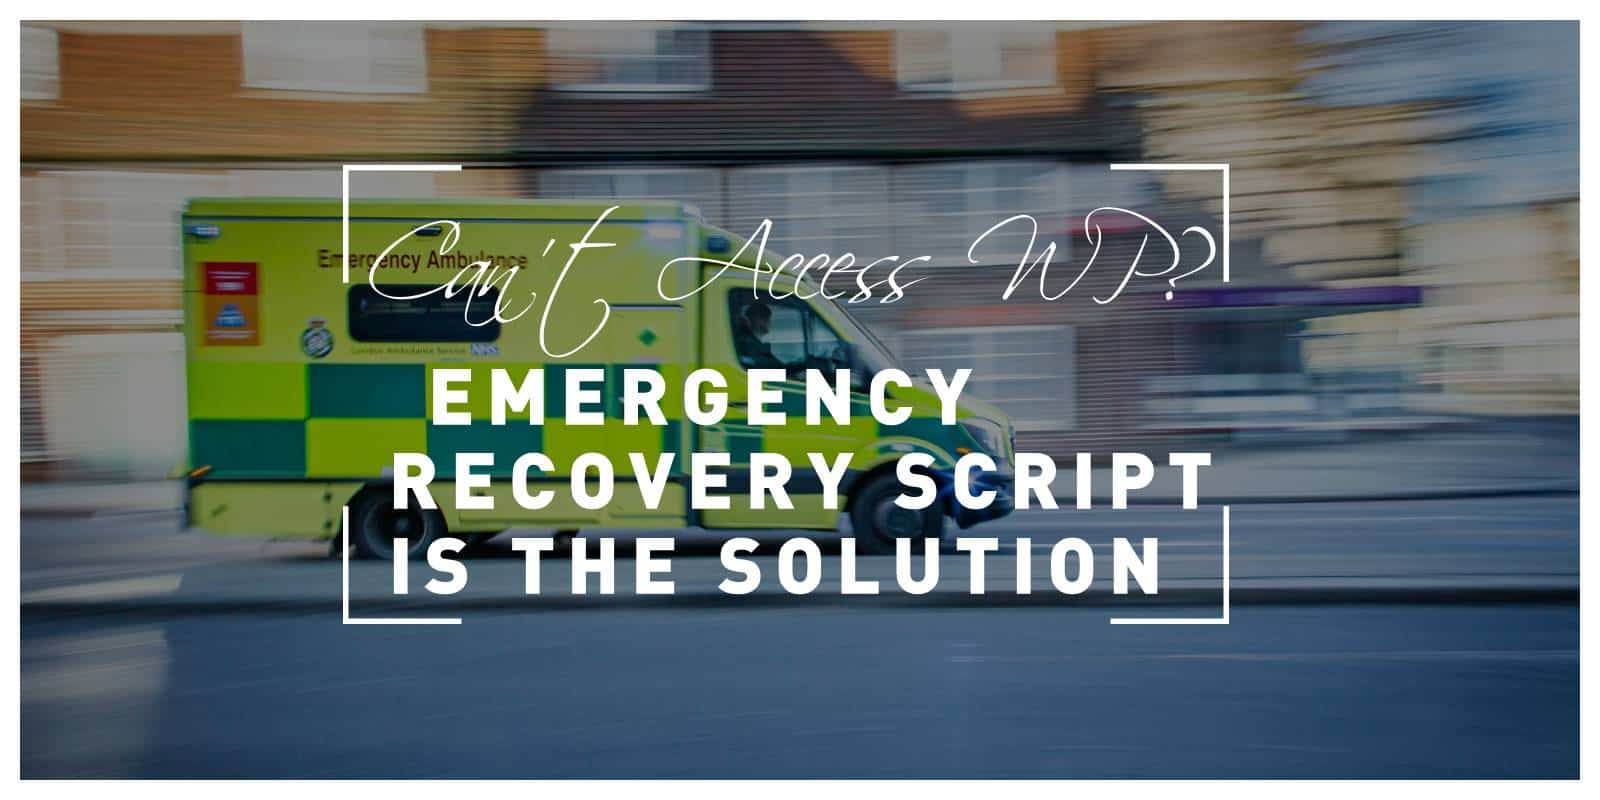 Can't Access Your WordPress Site? The Free Emergency Recovery Script Is the Solution